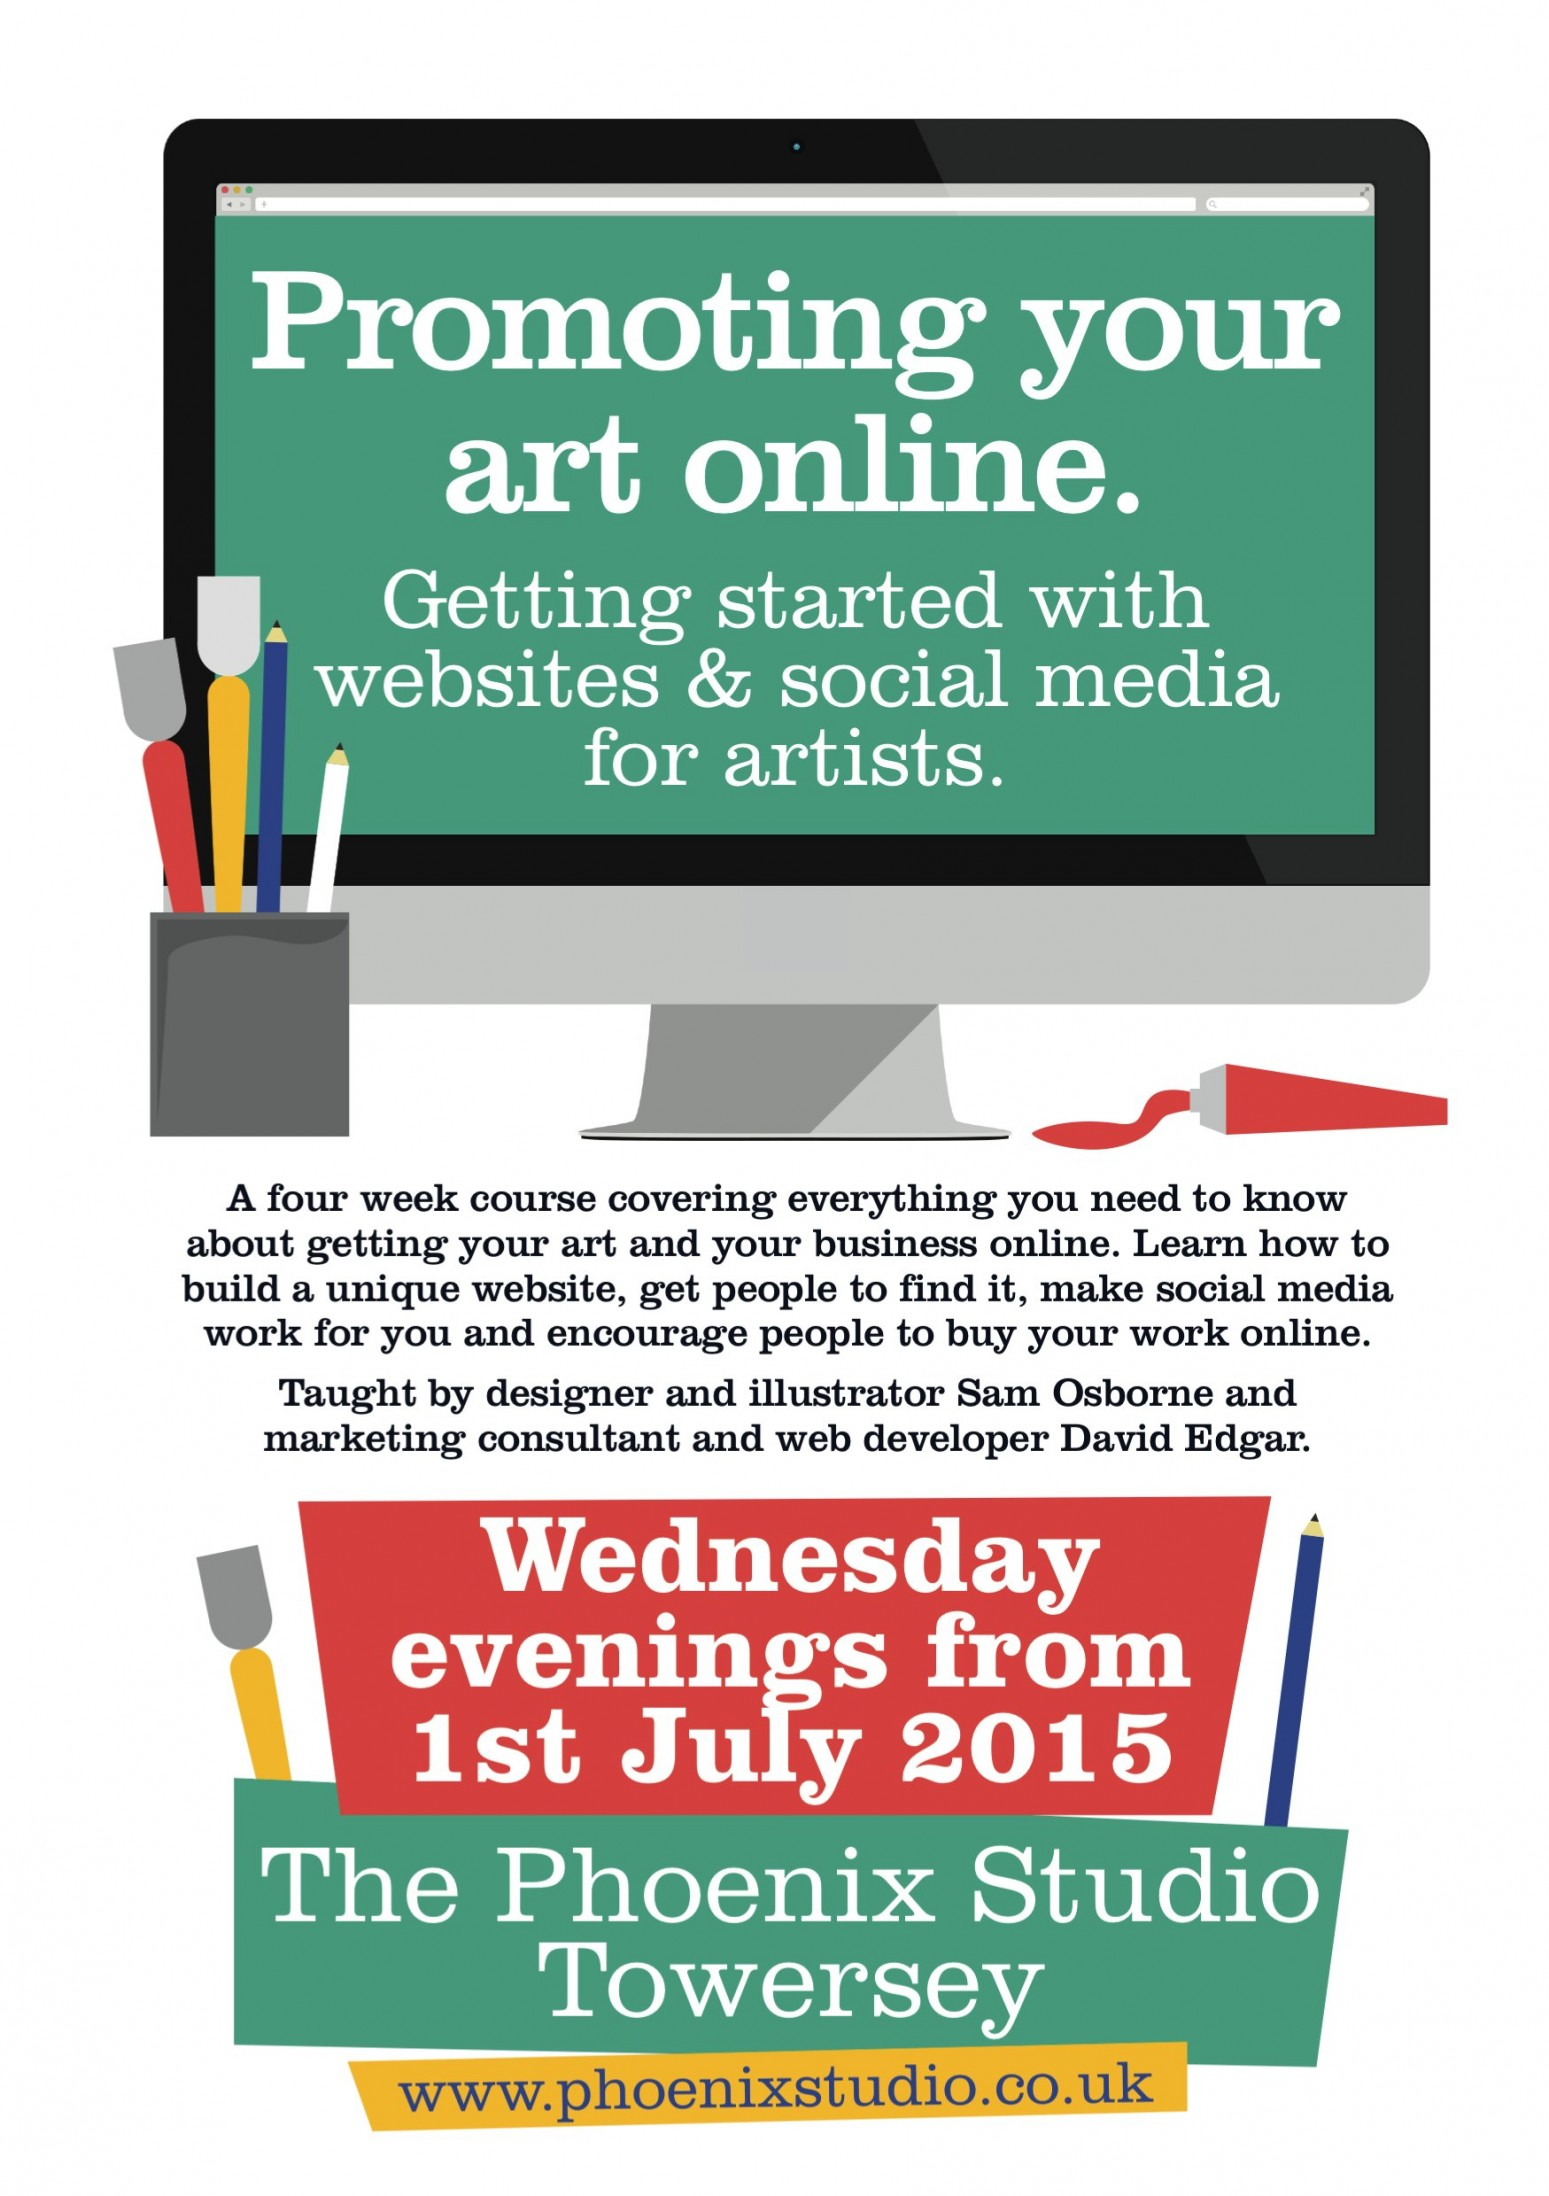 Promoting your art online